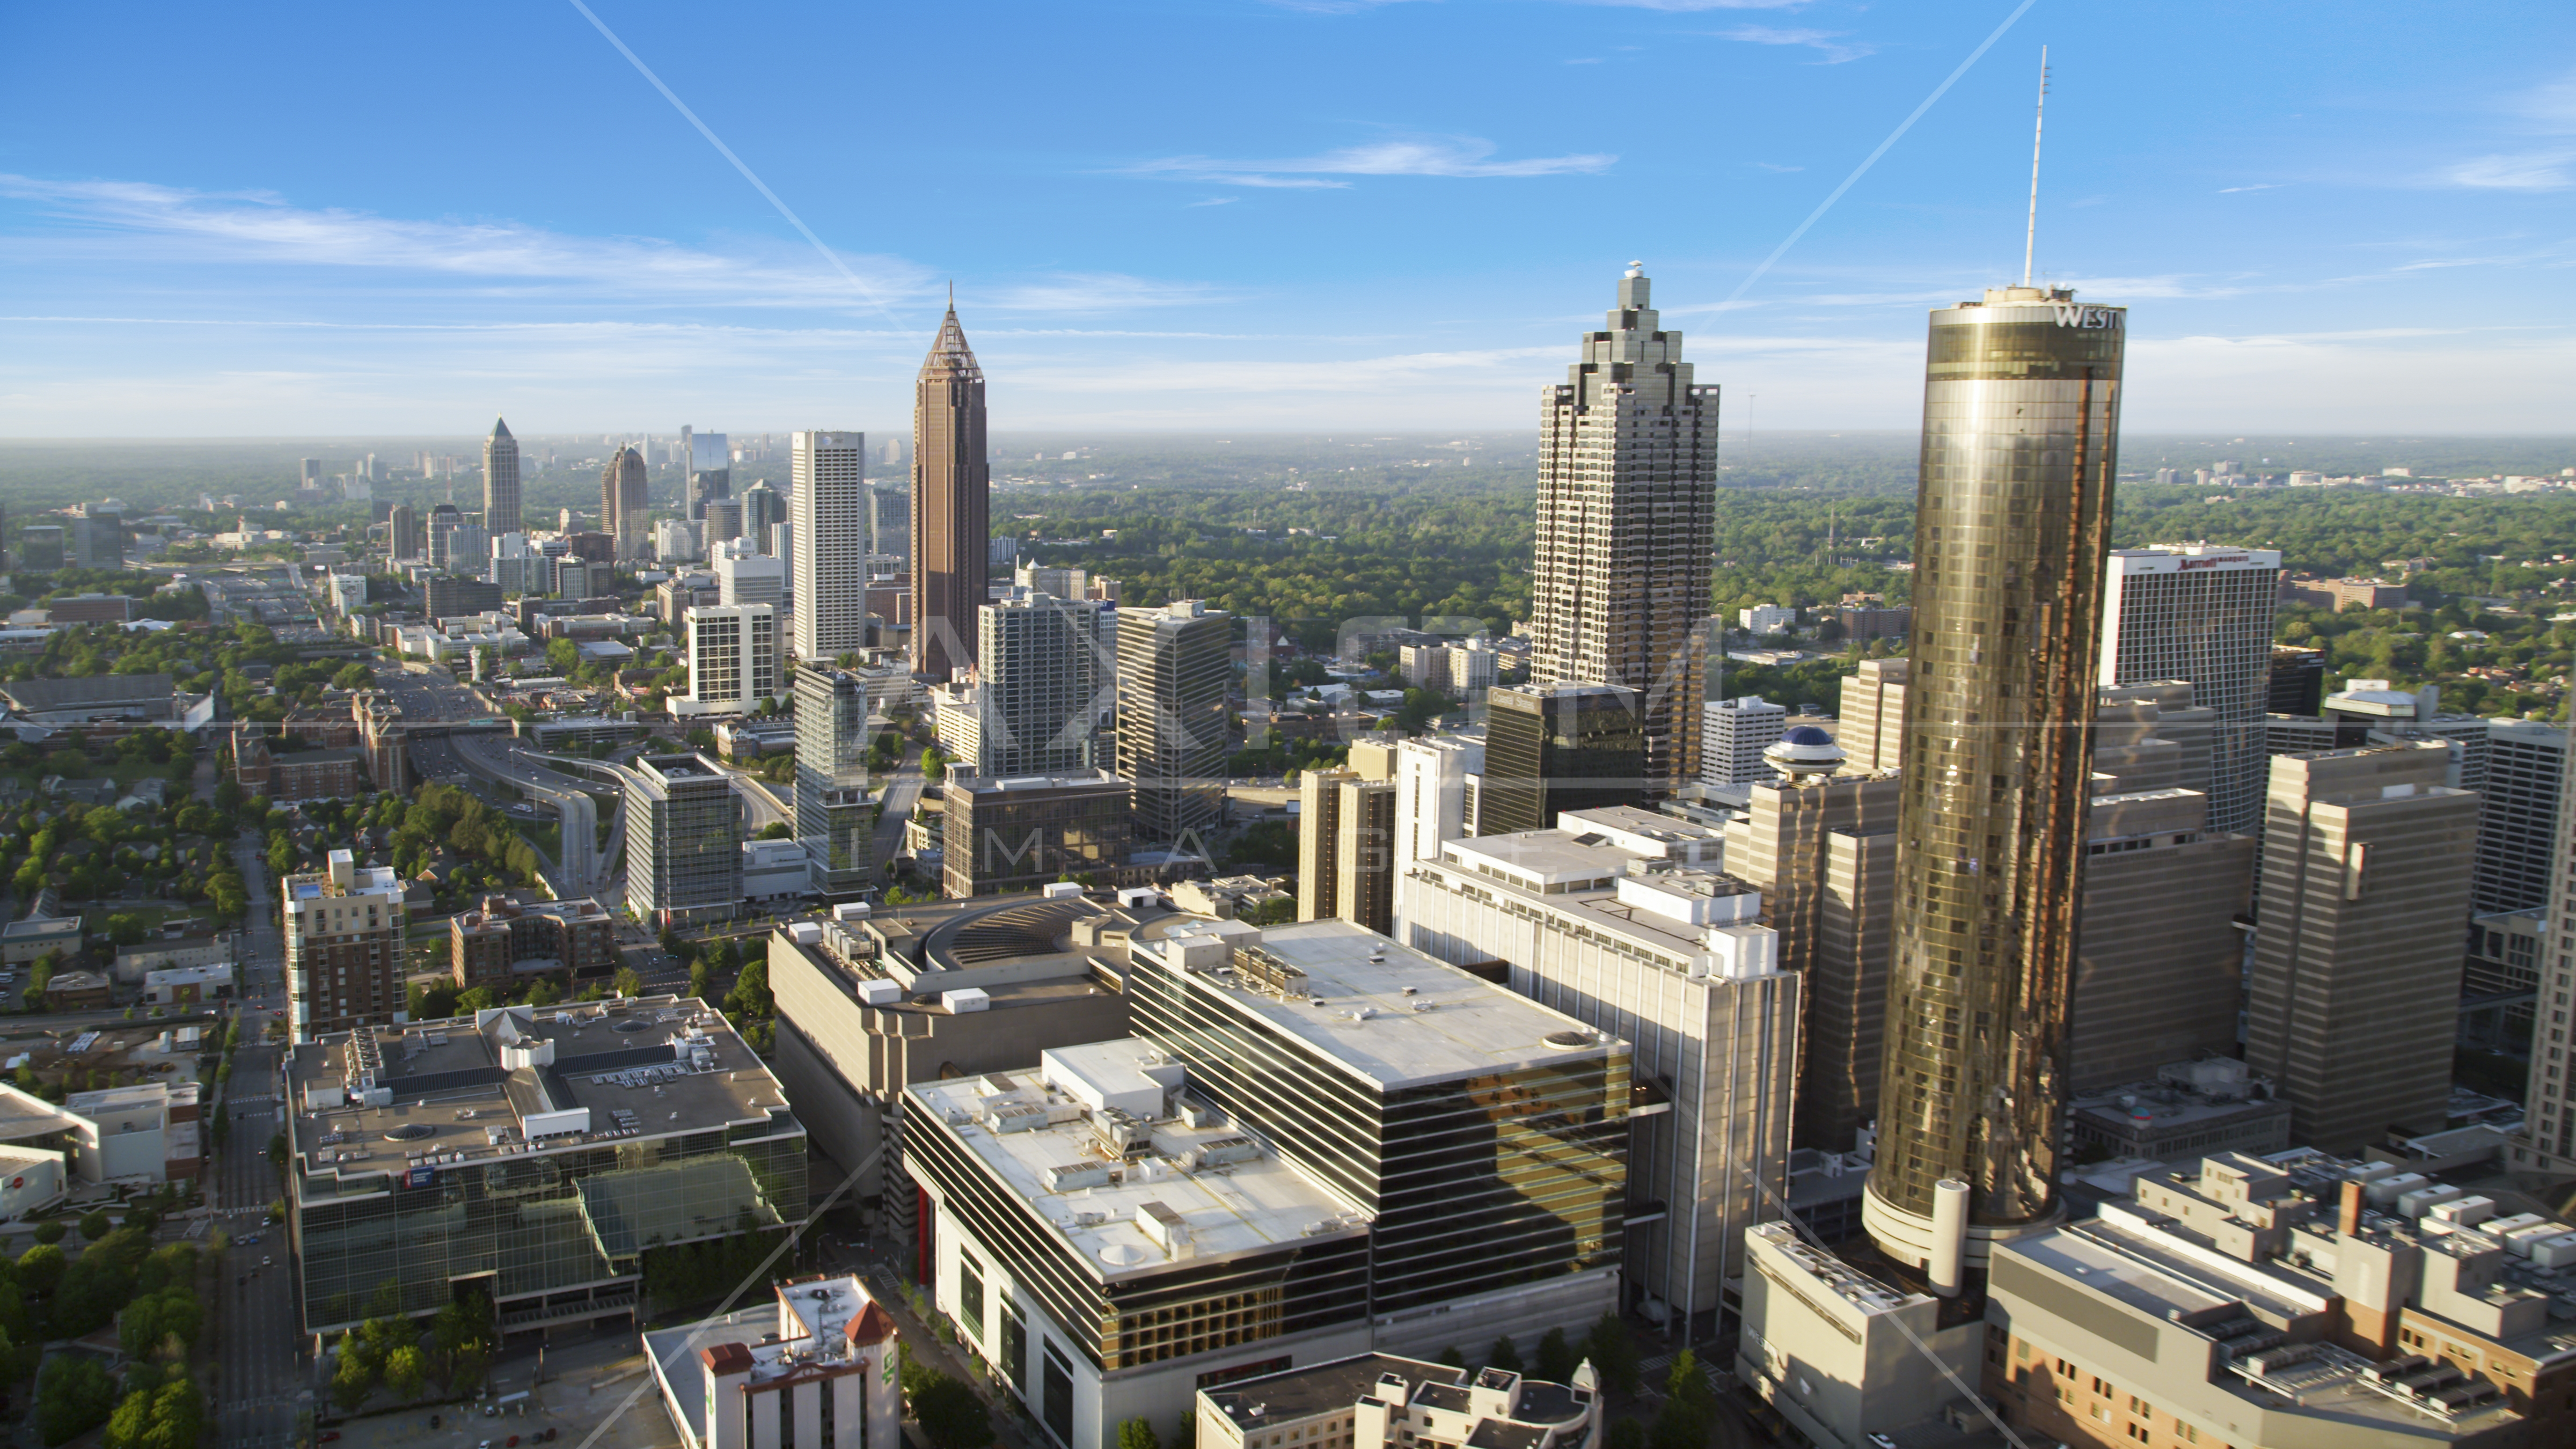 Westin Peachtree Plaza Hotel and SunTrust Plaza among high-rises, Downtown  Atlanta Aerial Stock Photos AX39_047 0000126F | Axiom Images